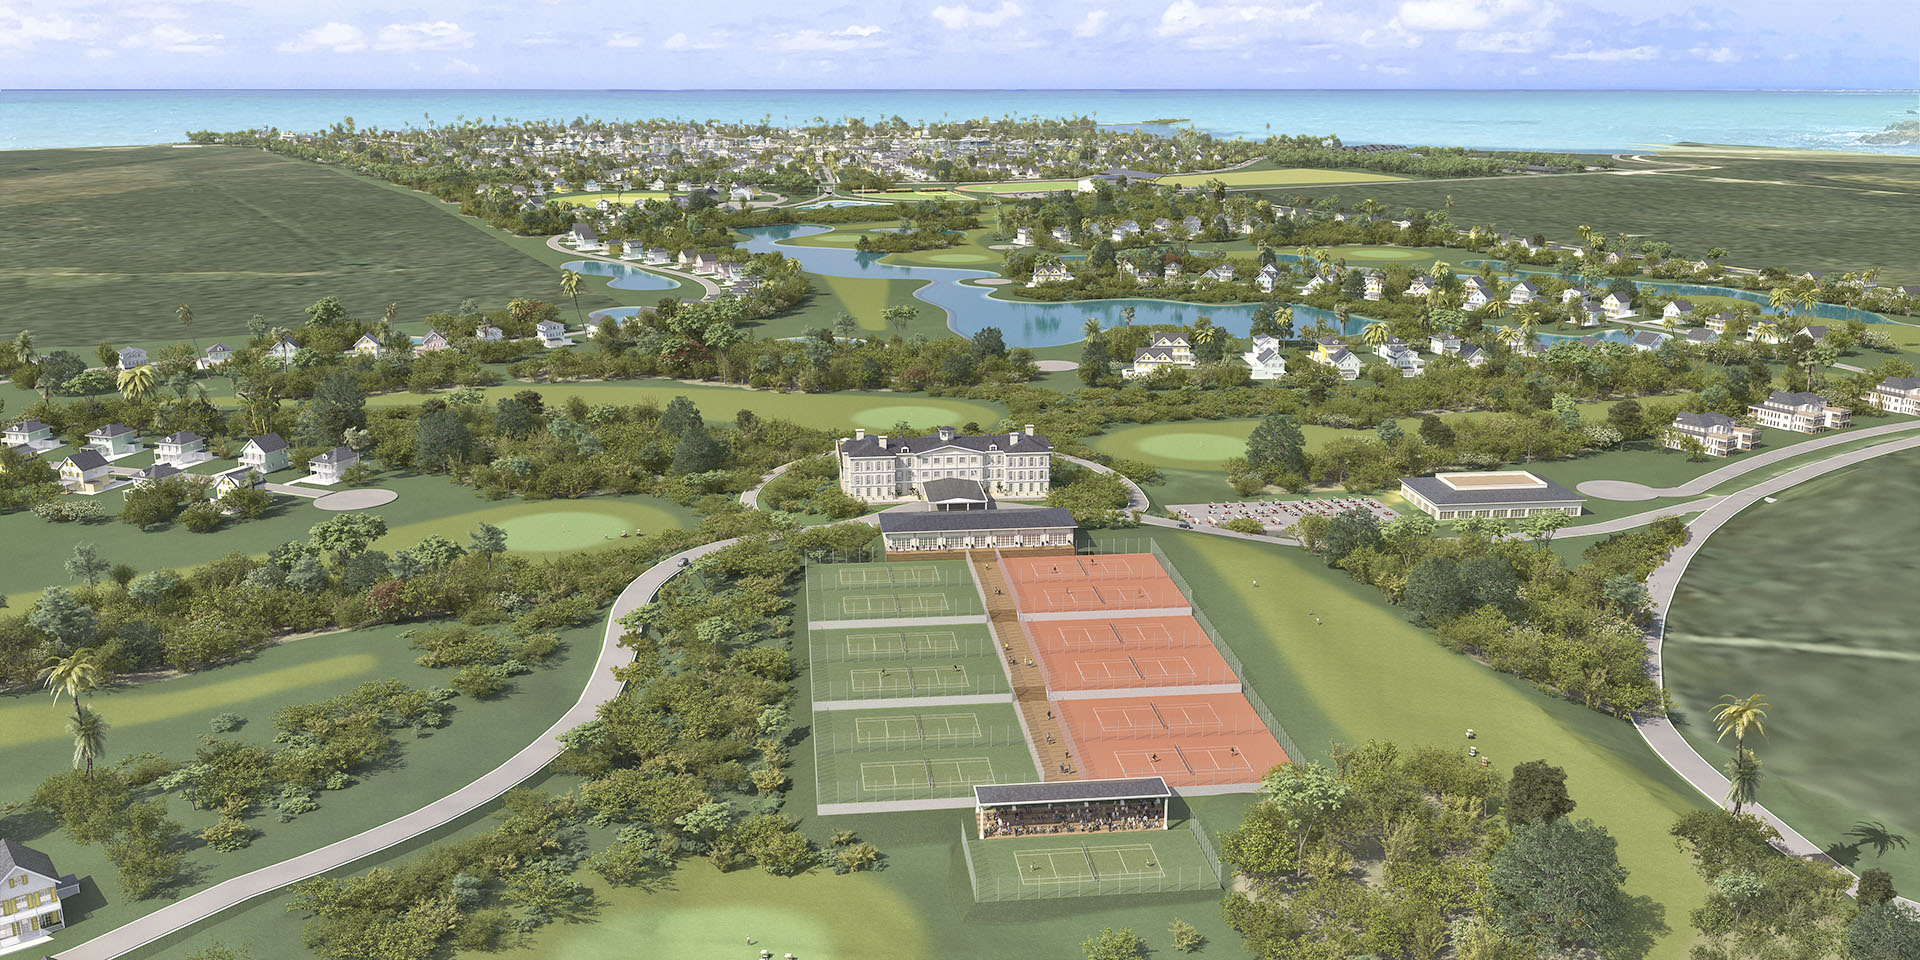 Aerial View of Golf, Tennis & Swim Club